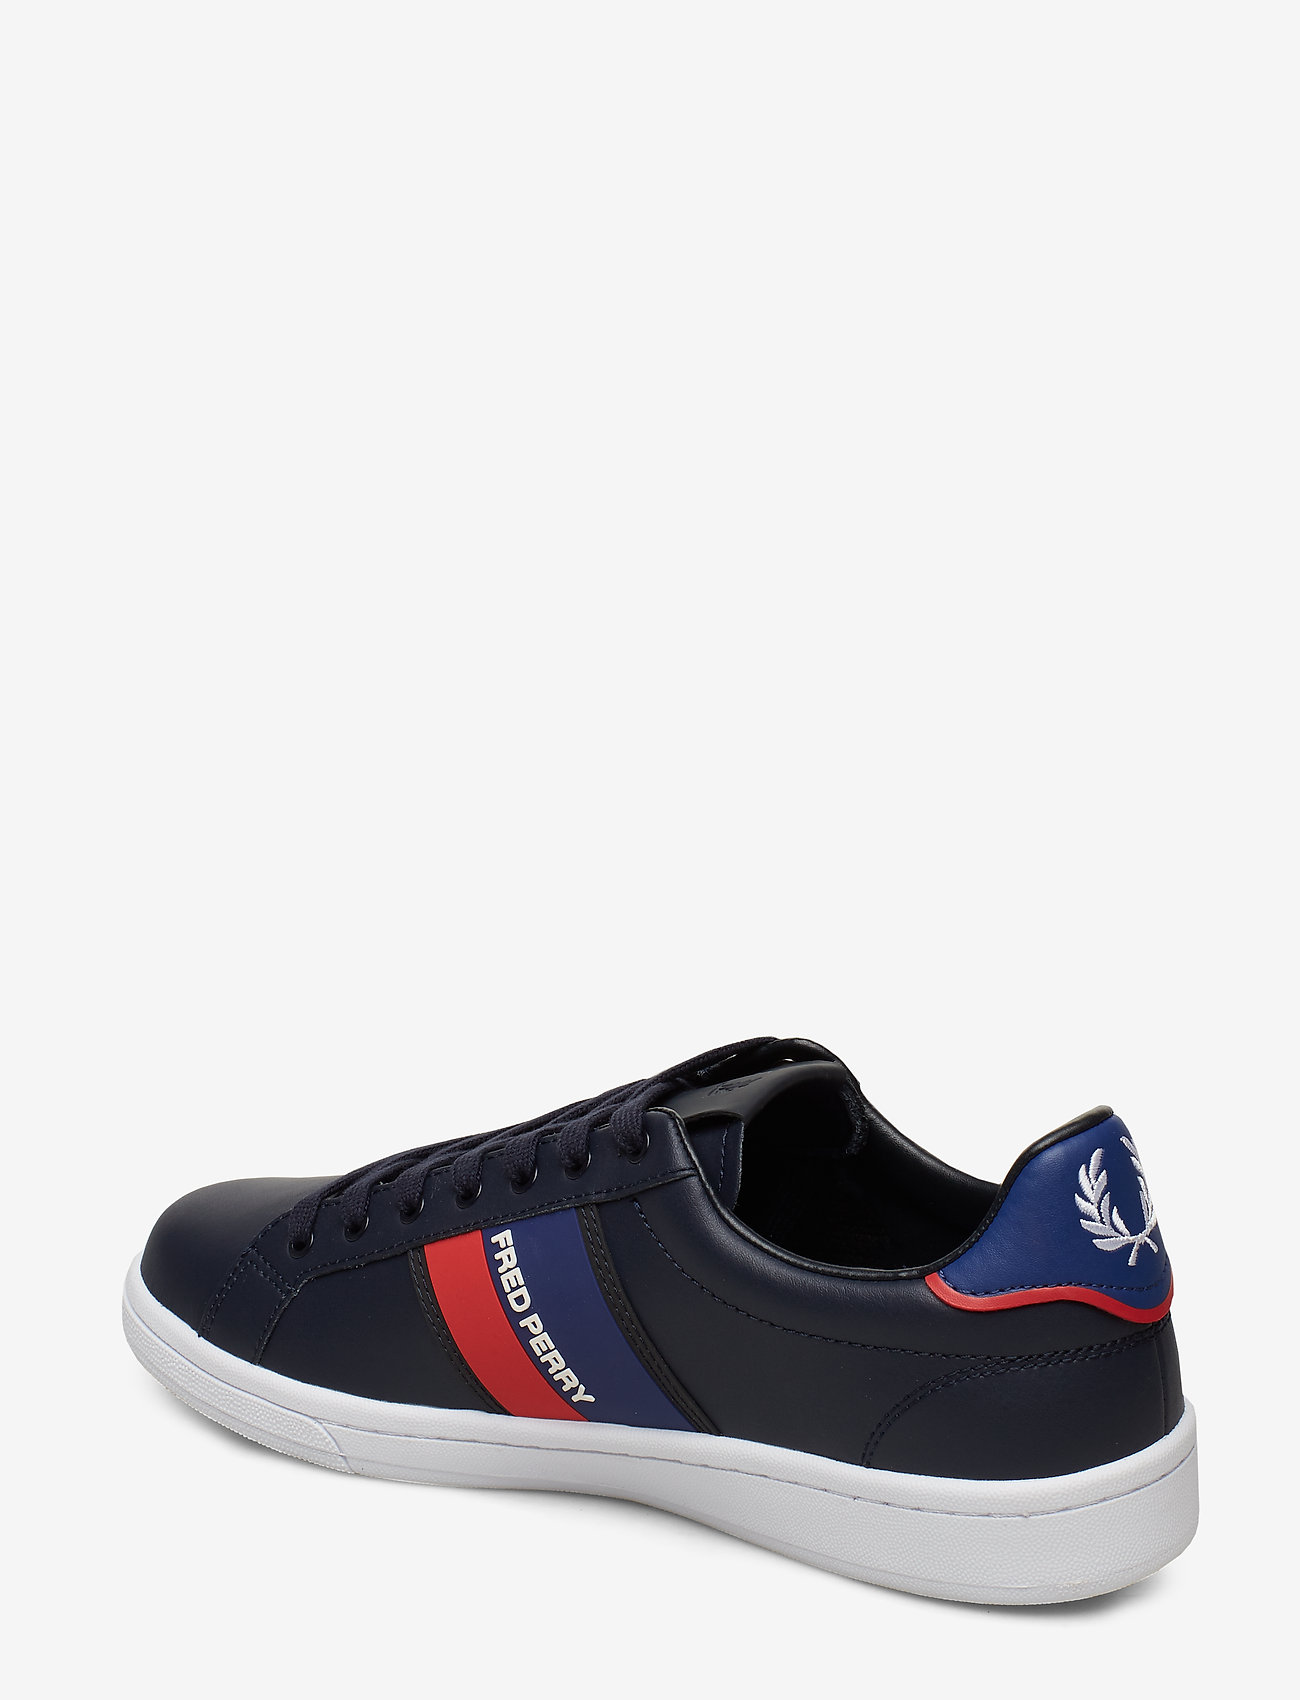 B721 Two Tone Brand. (Navy) - Fred Perry